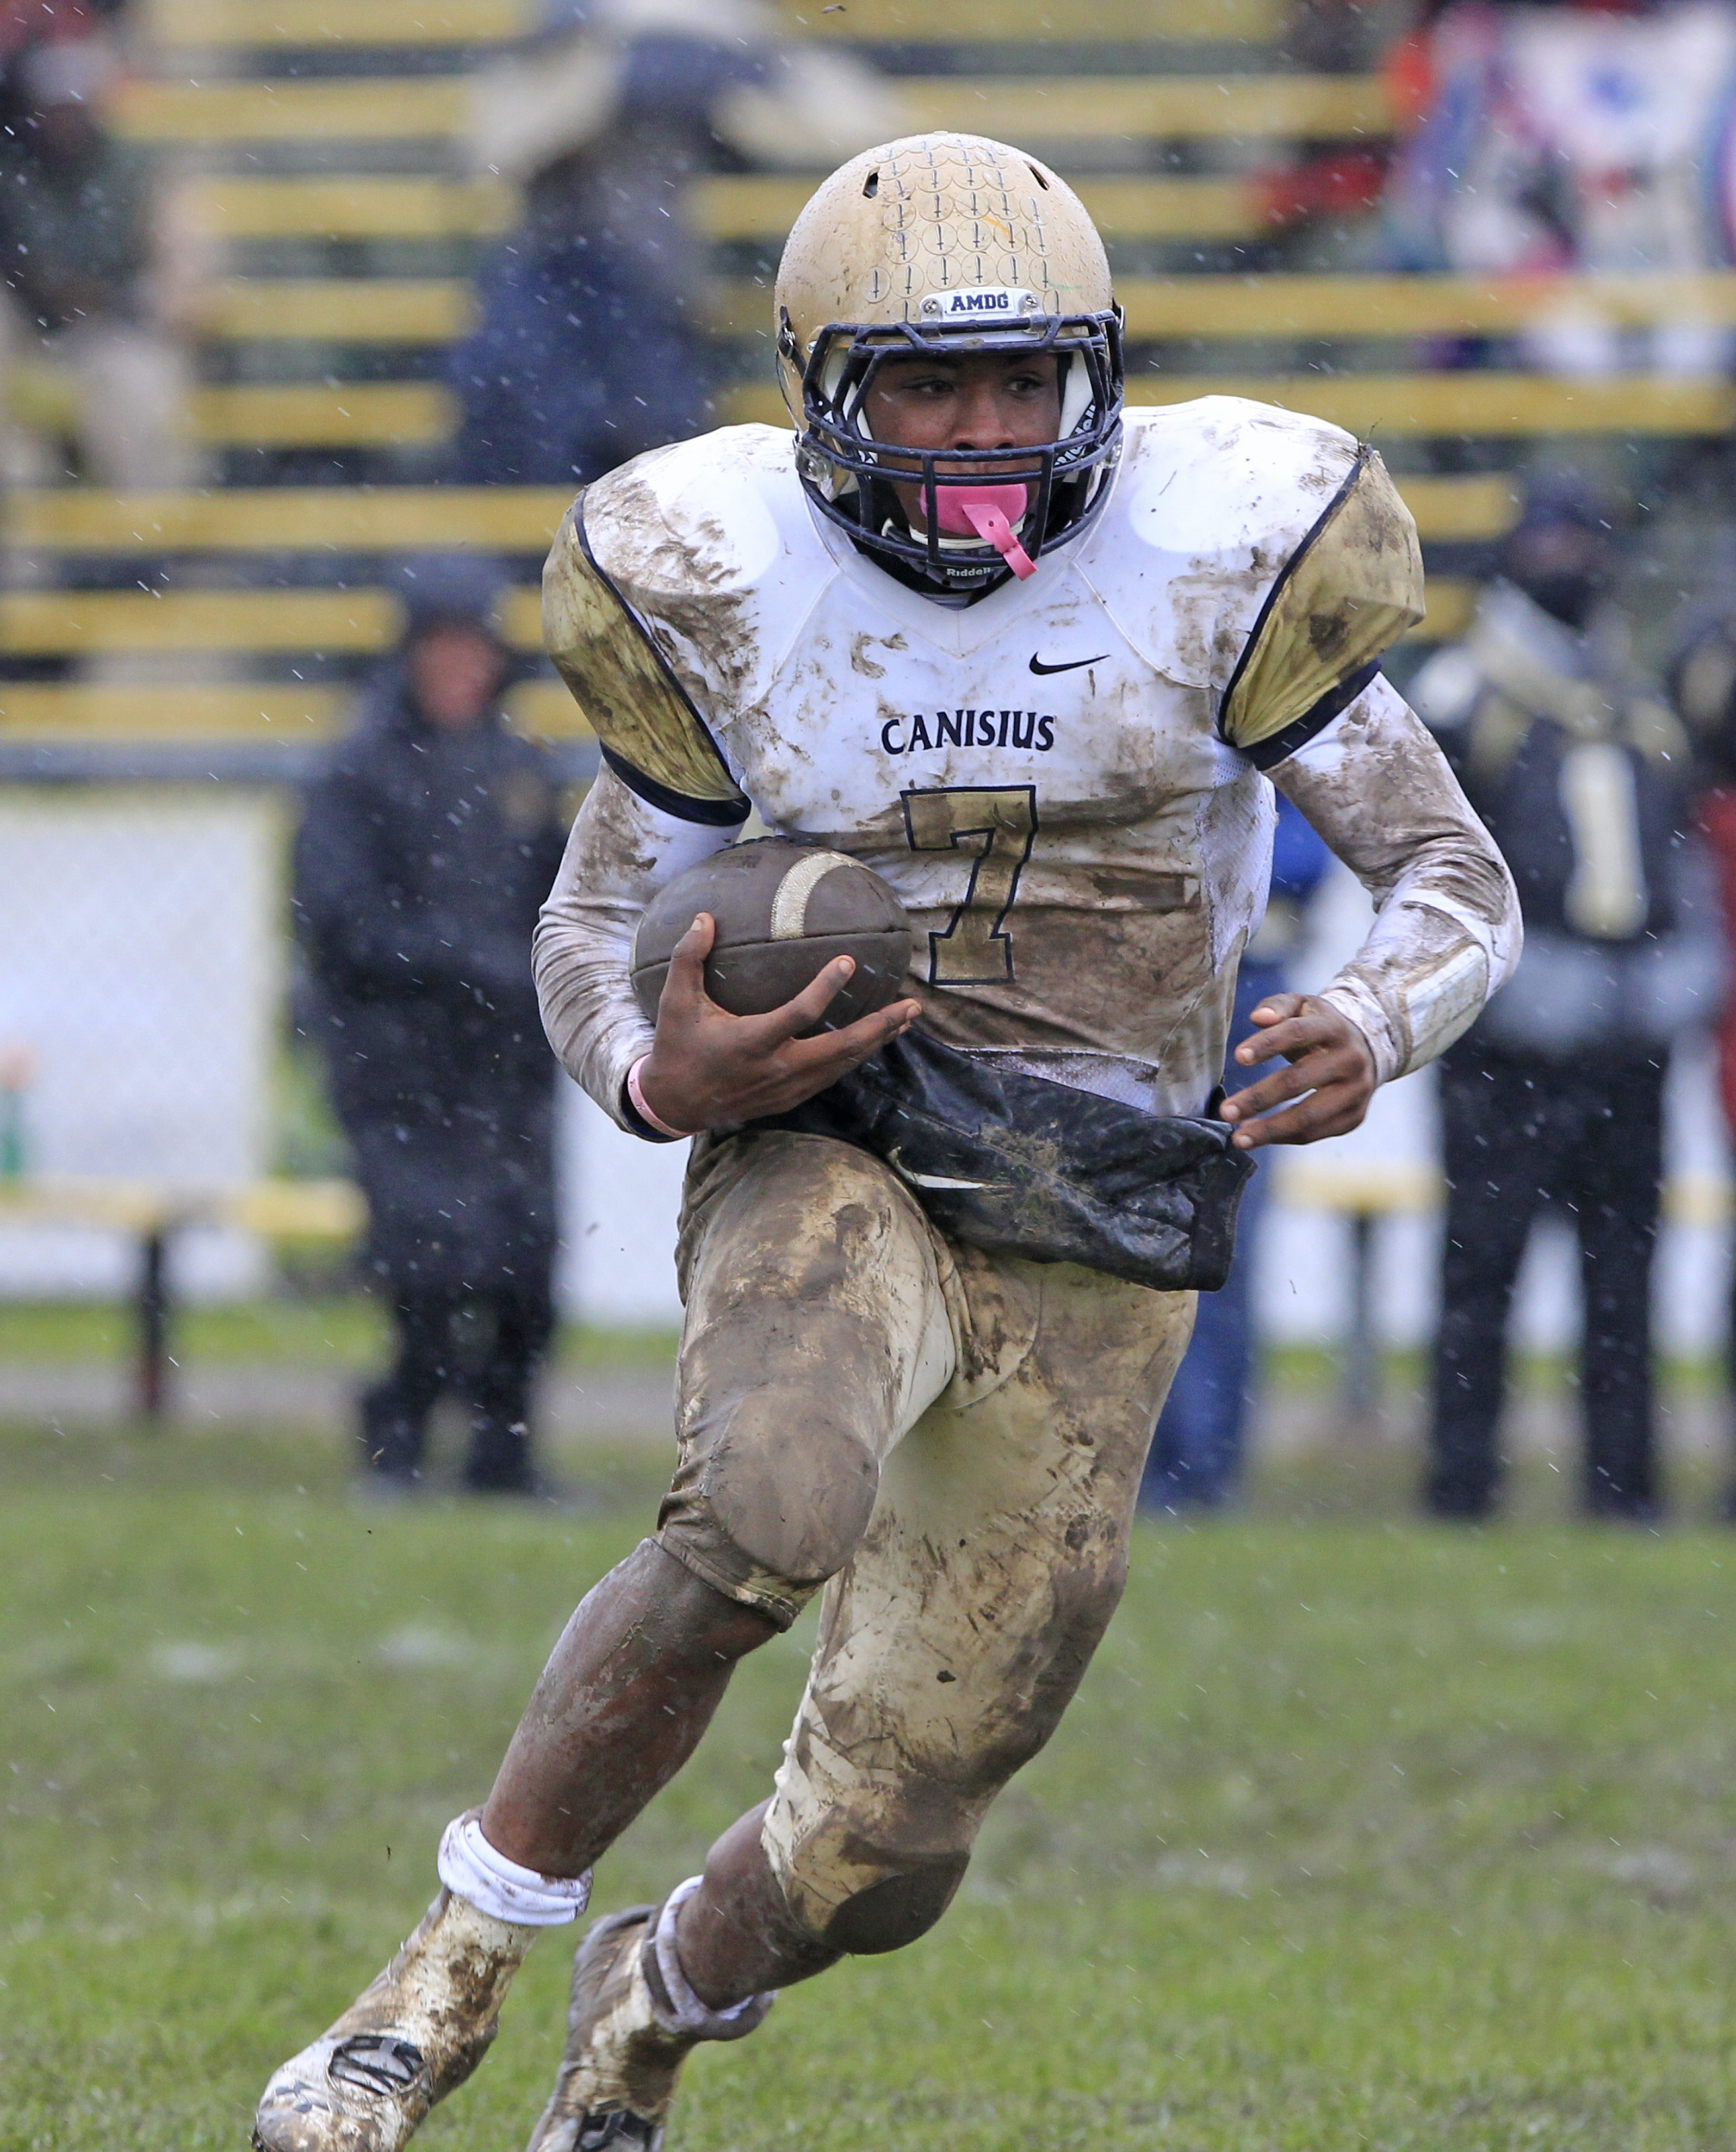 The rivalry between standout running backs Qadree Ollison of Canisius, left, and Nigel Davis of St. Joe's, right, predates their high school careers.